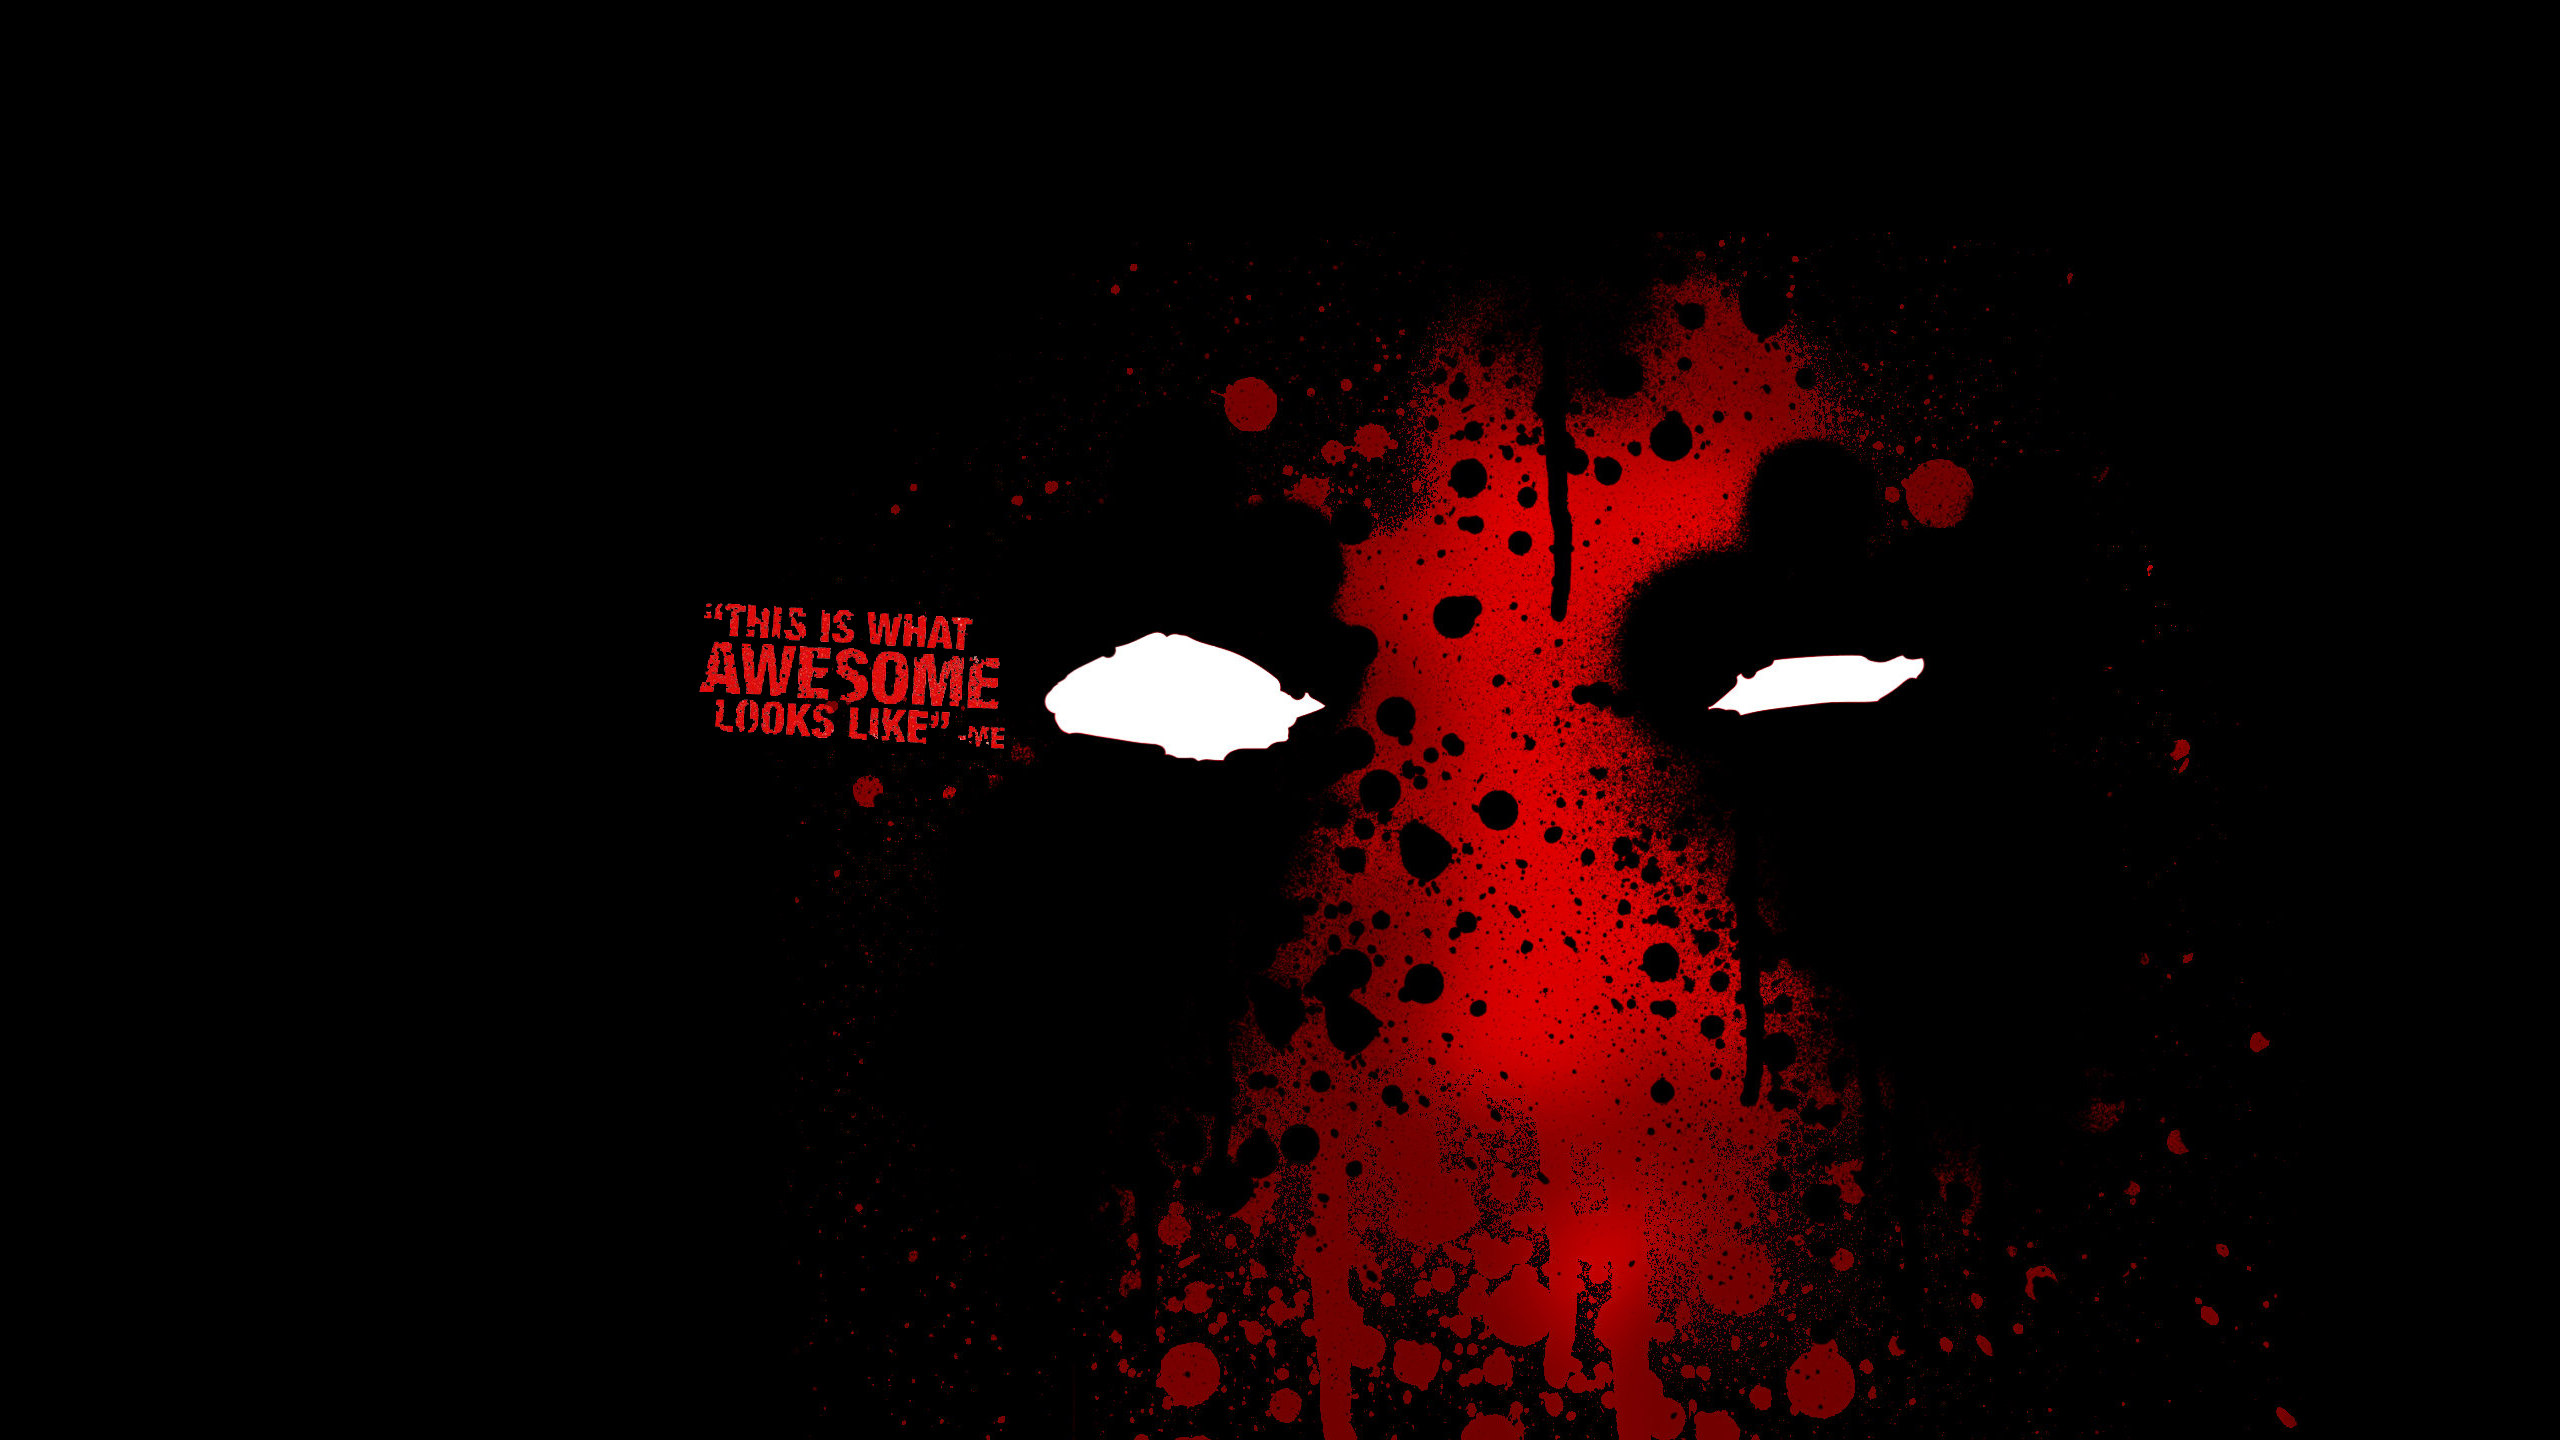 Deadpool Channel Art for YouTube by GhostGAMER37 on